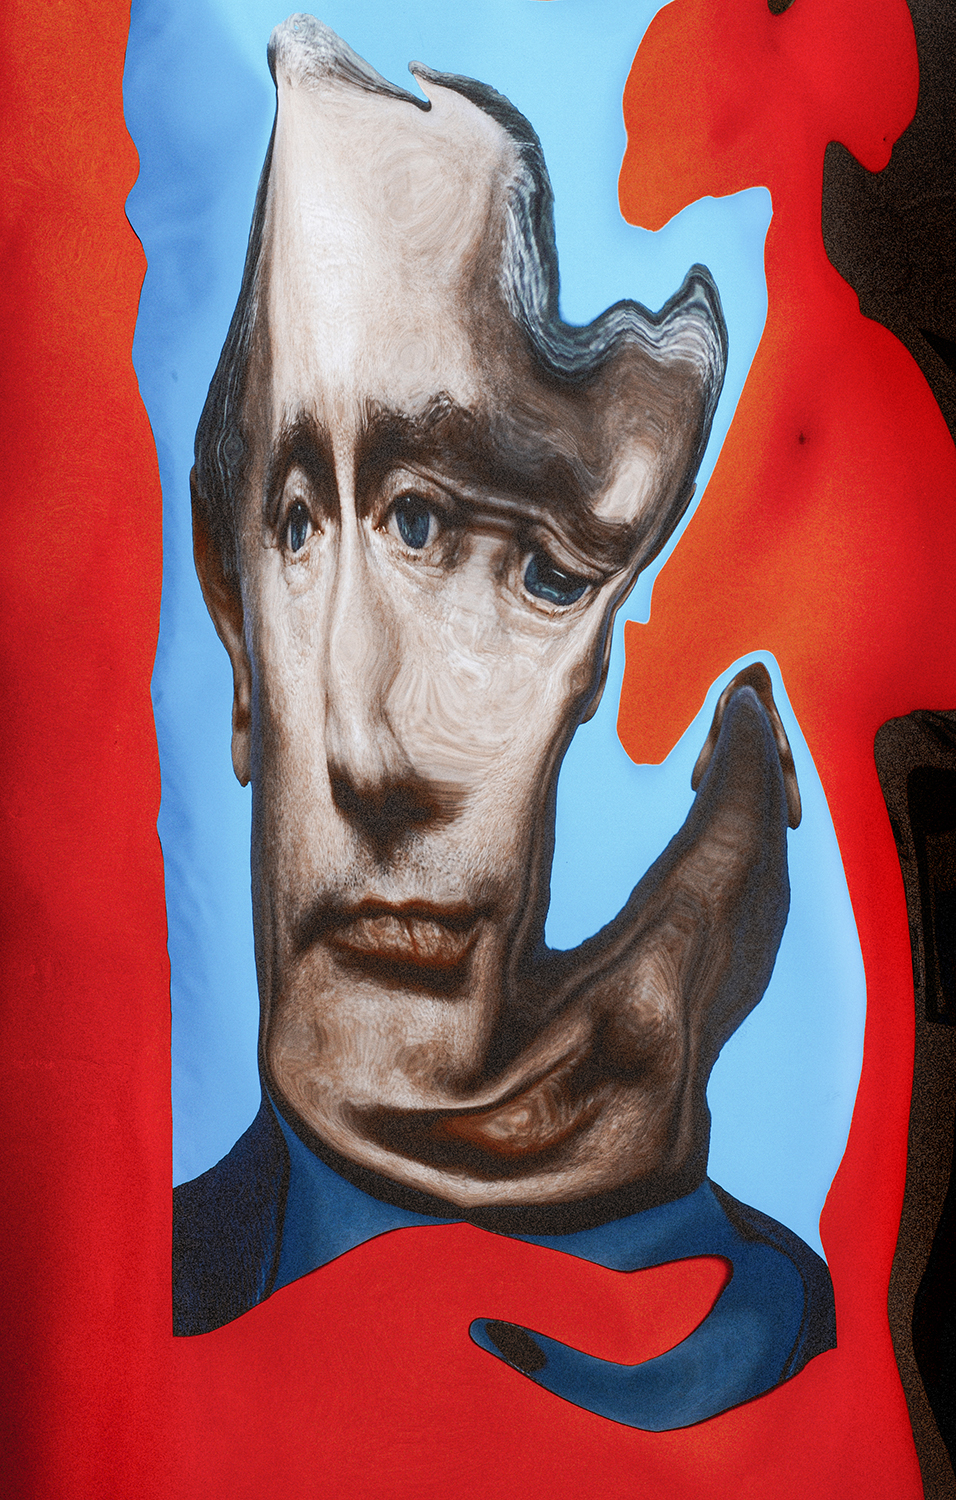 Putin: Man of The Year  n.2